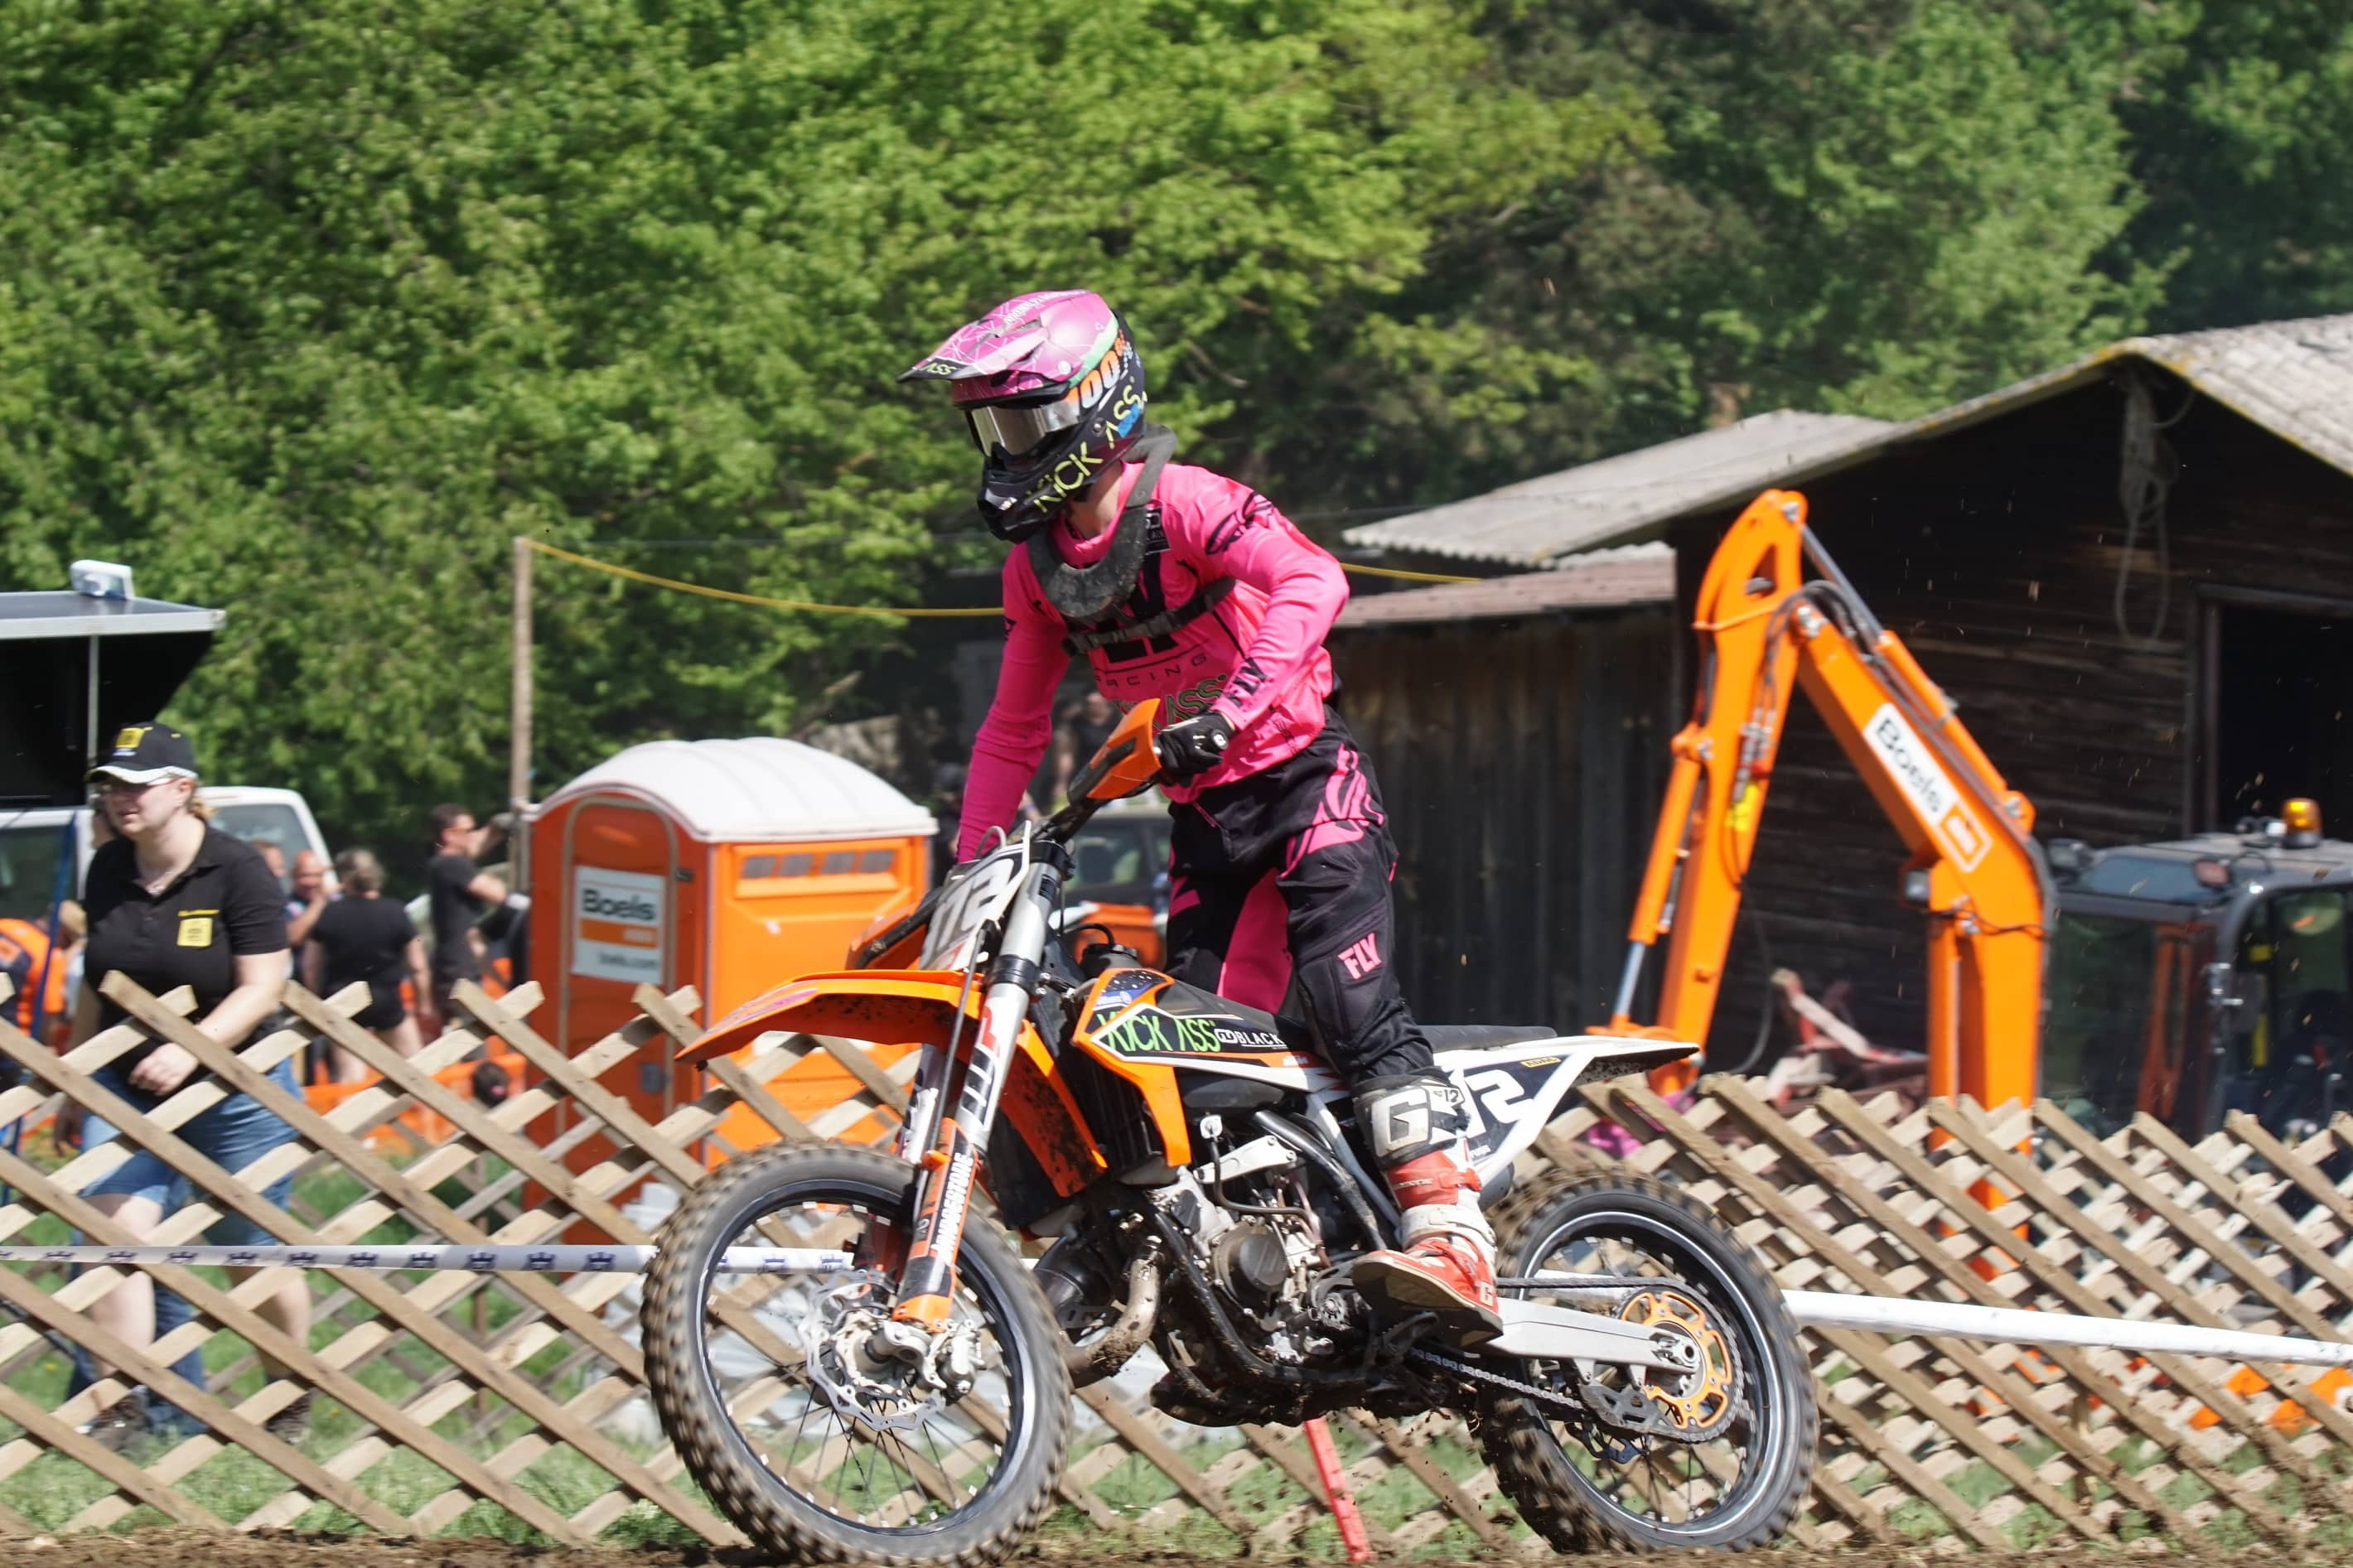 DSC 215_Moto Cross Sittendorf Teil1 am 29.04.2018